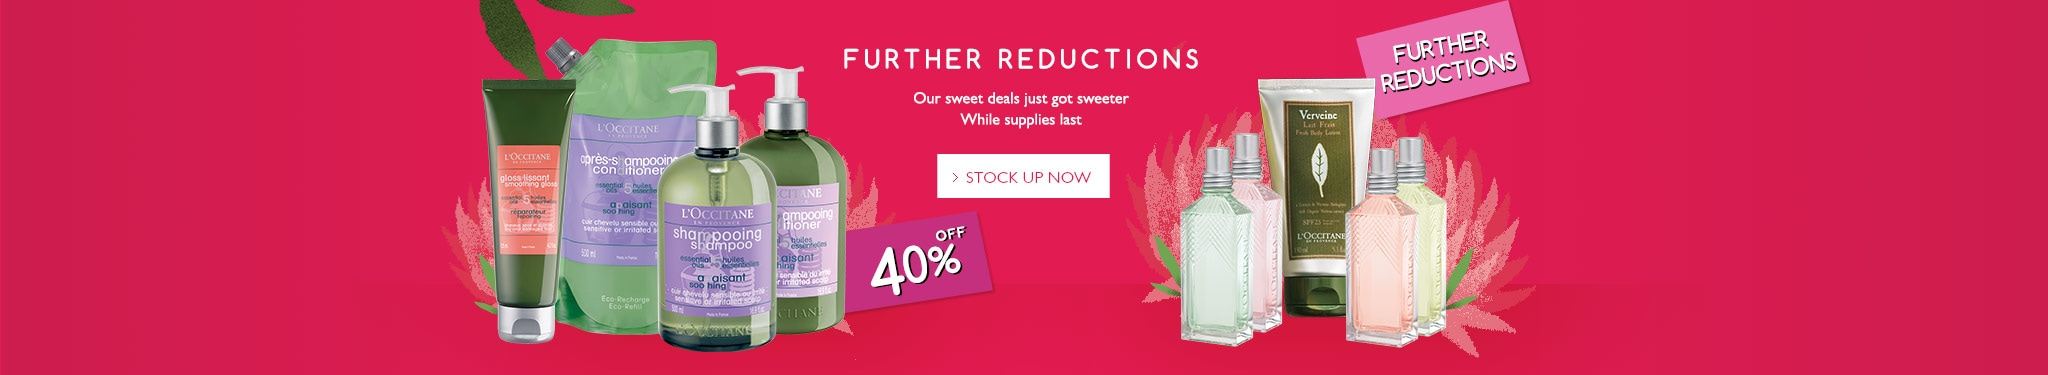 A FURTHER REDUCTIONS